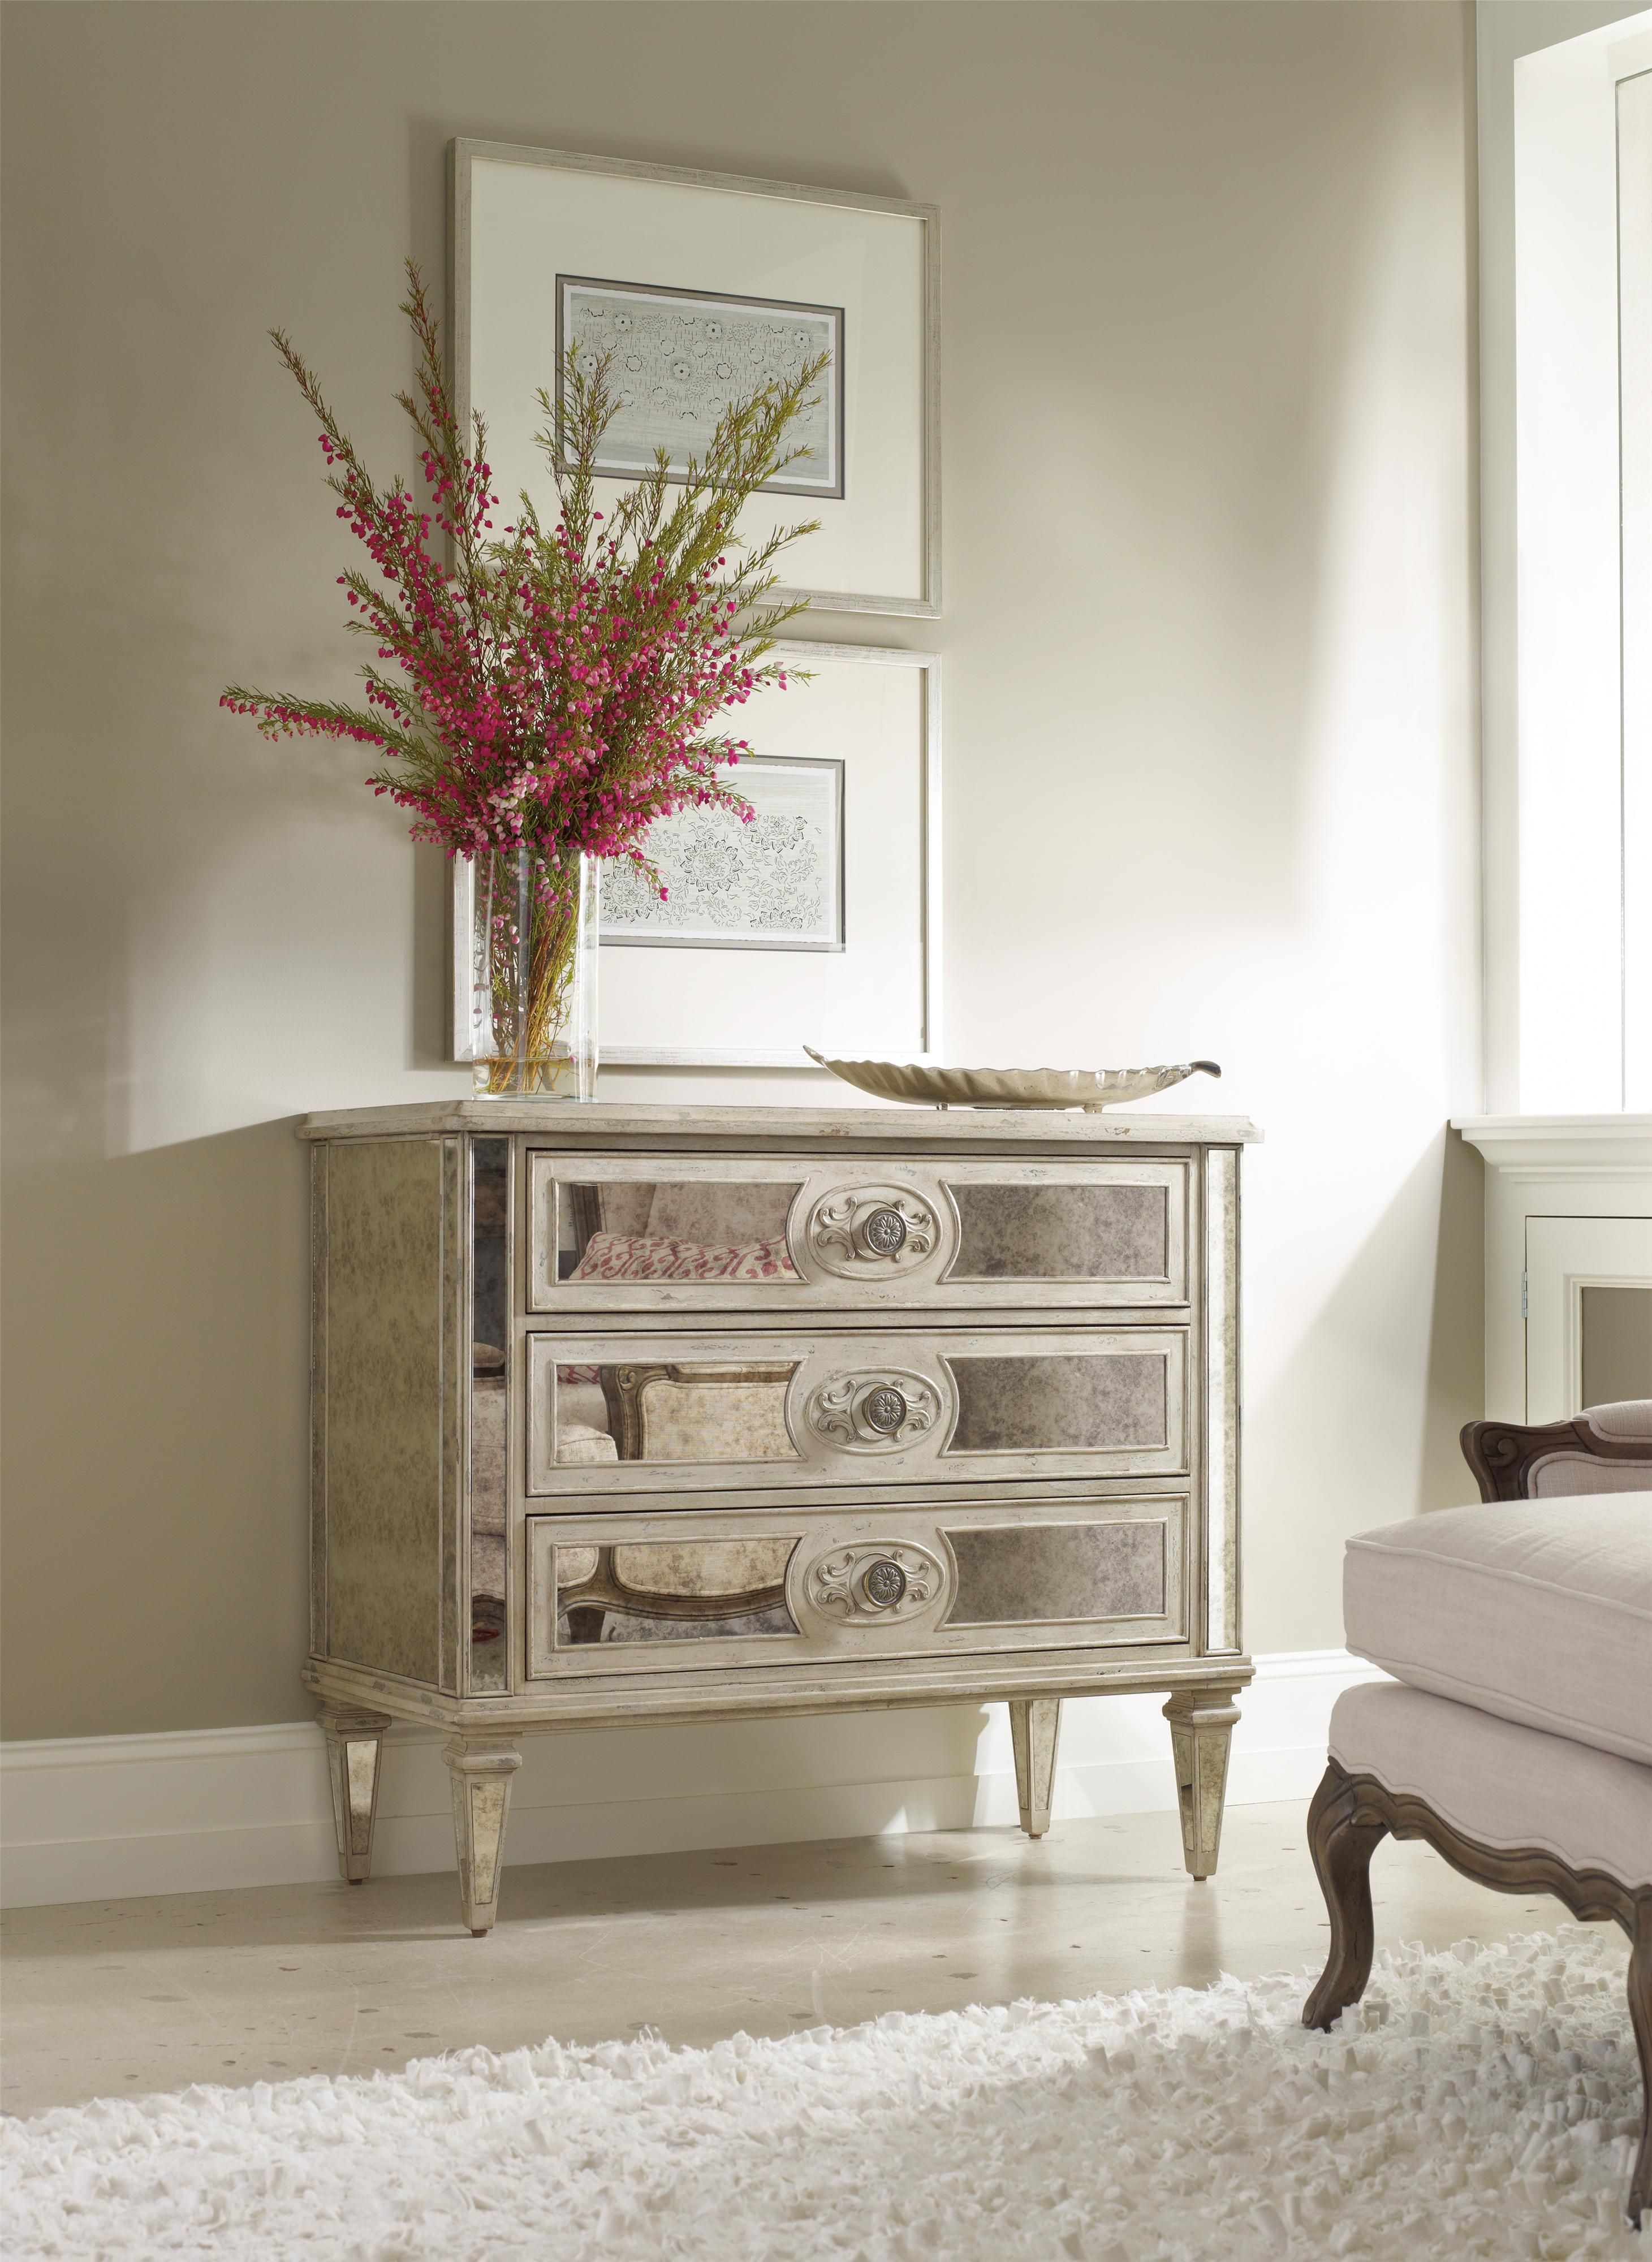 Living Room Accents 3 Drawer Antique Mirrored Chest By Hamilton